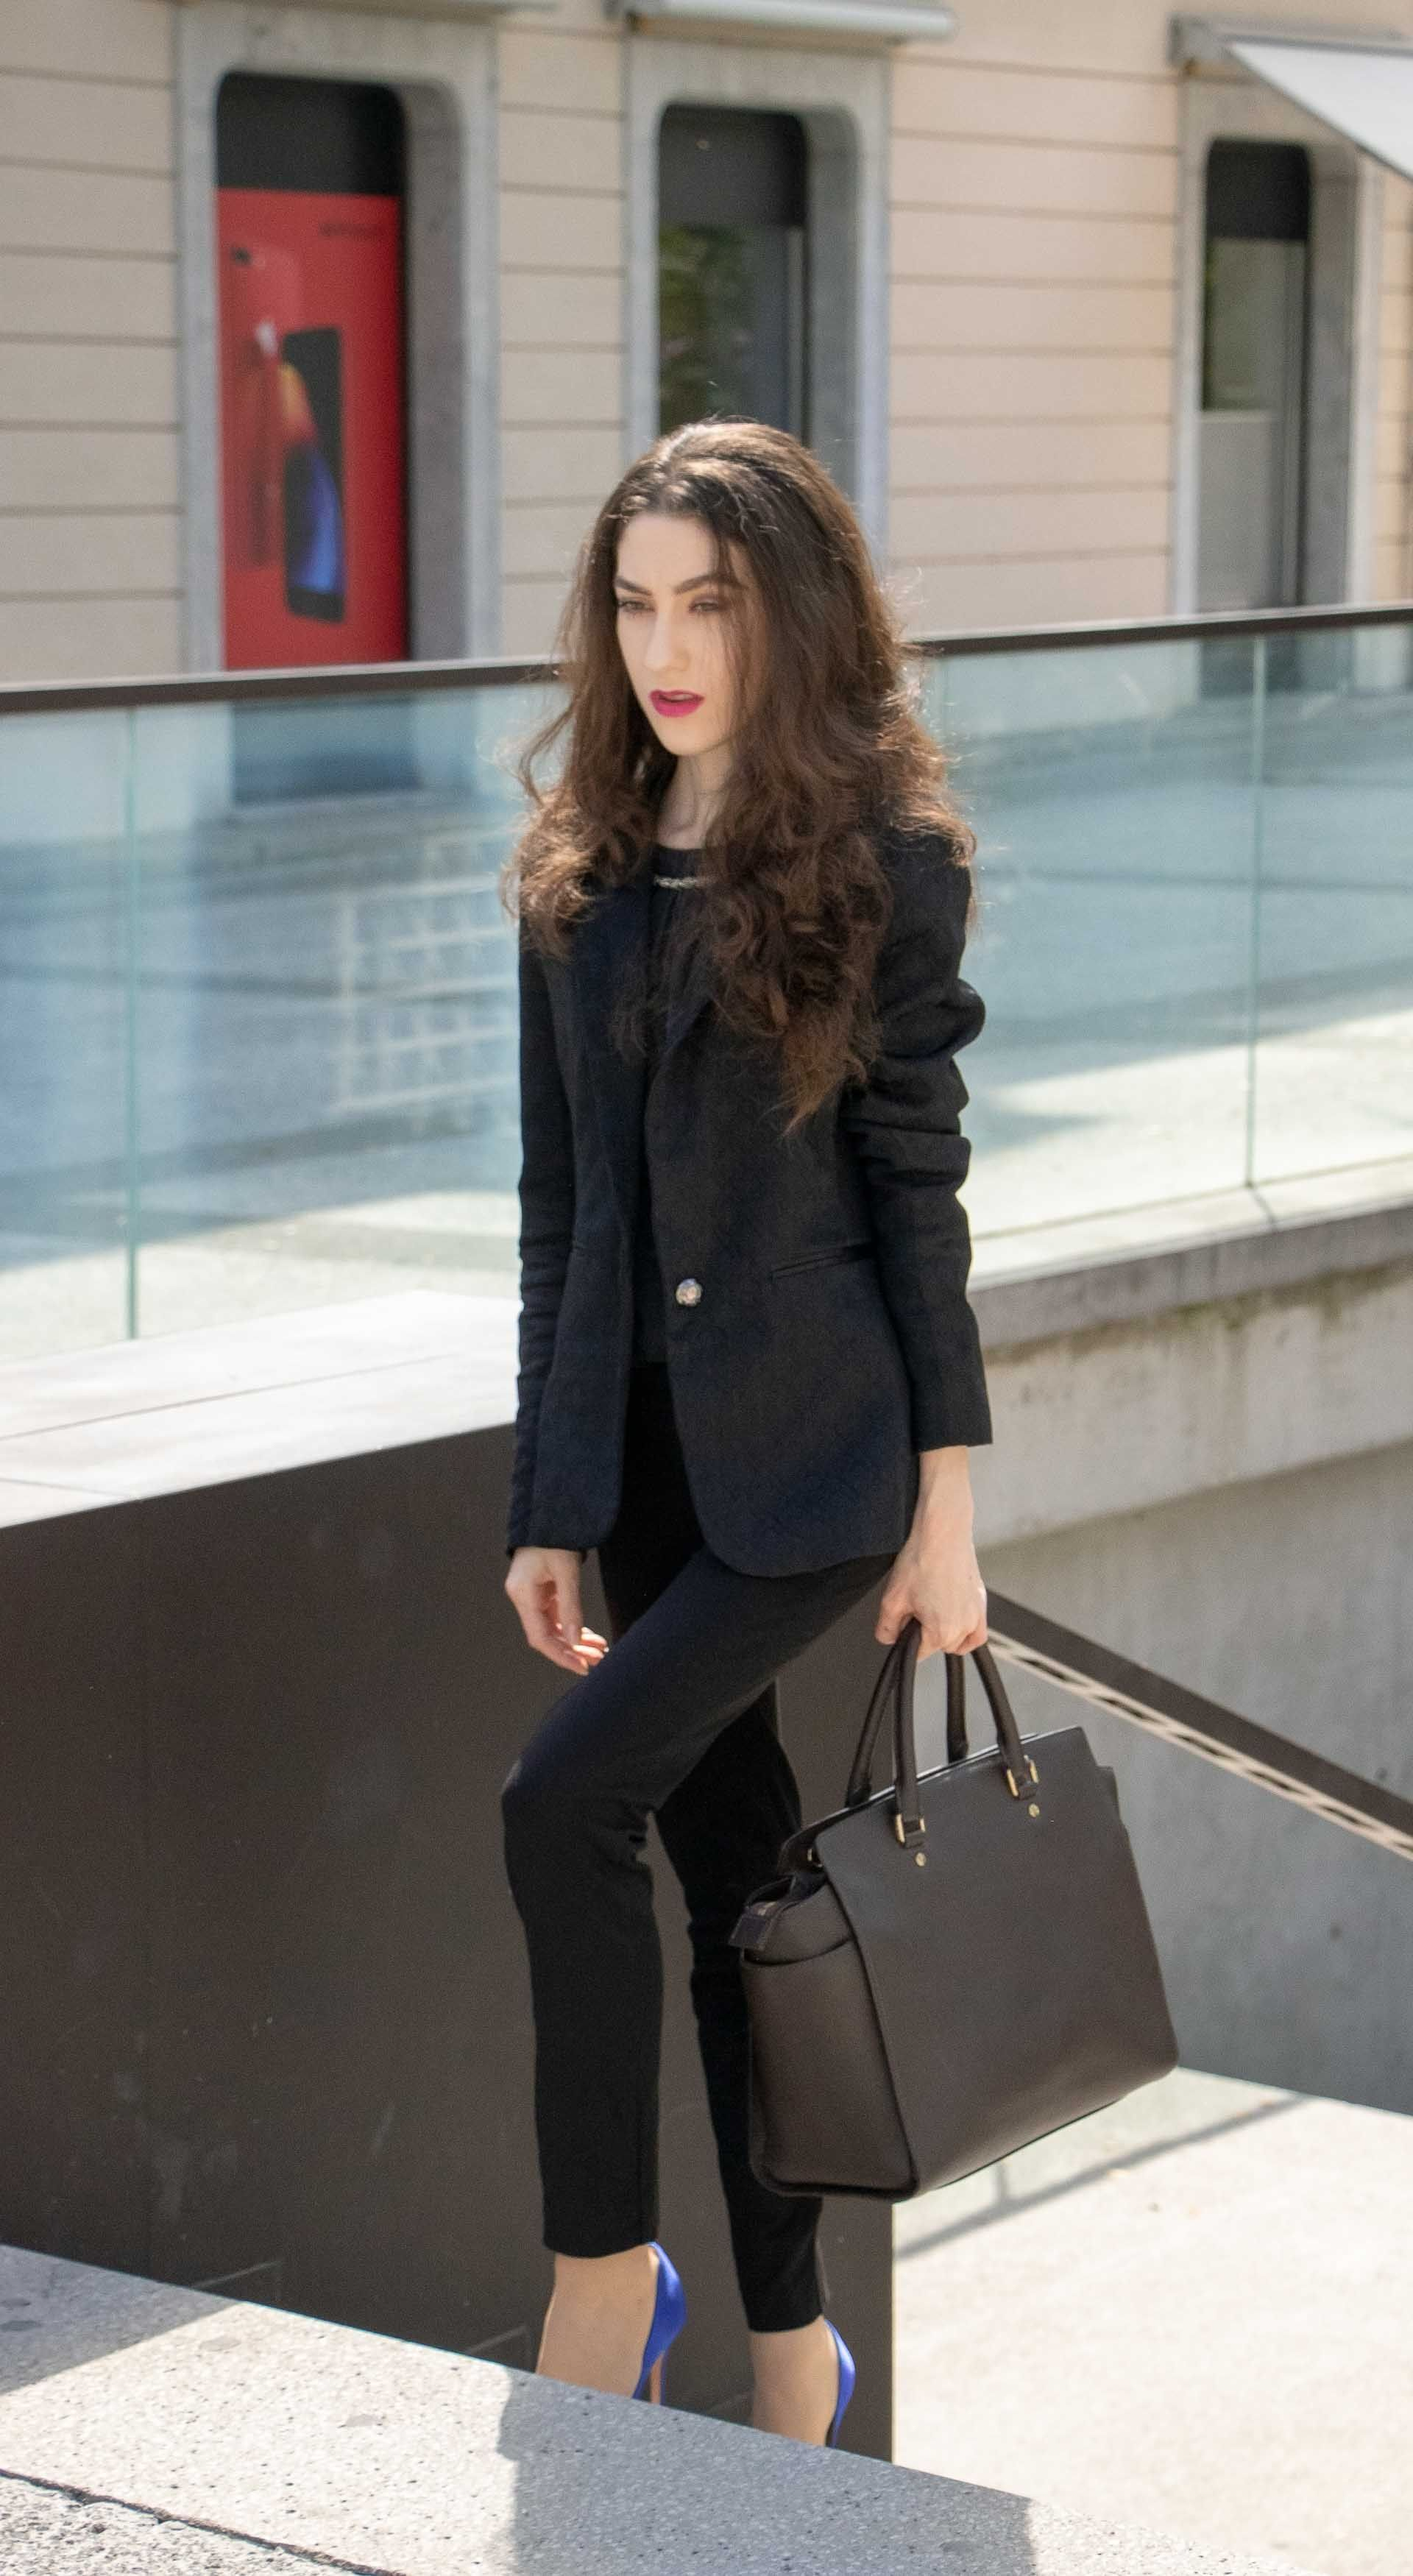 ef438736f26 5 fashionable business outfits you can wear for work this autumn. From  business professional to business casual here are best fall office ready  outfits!